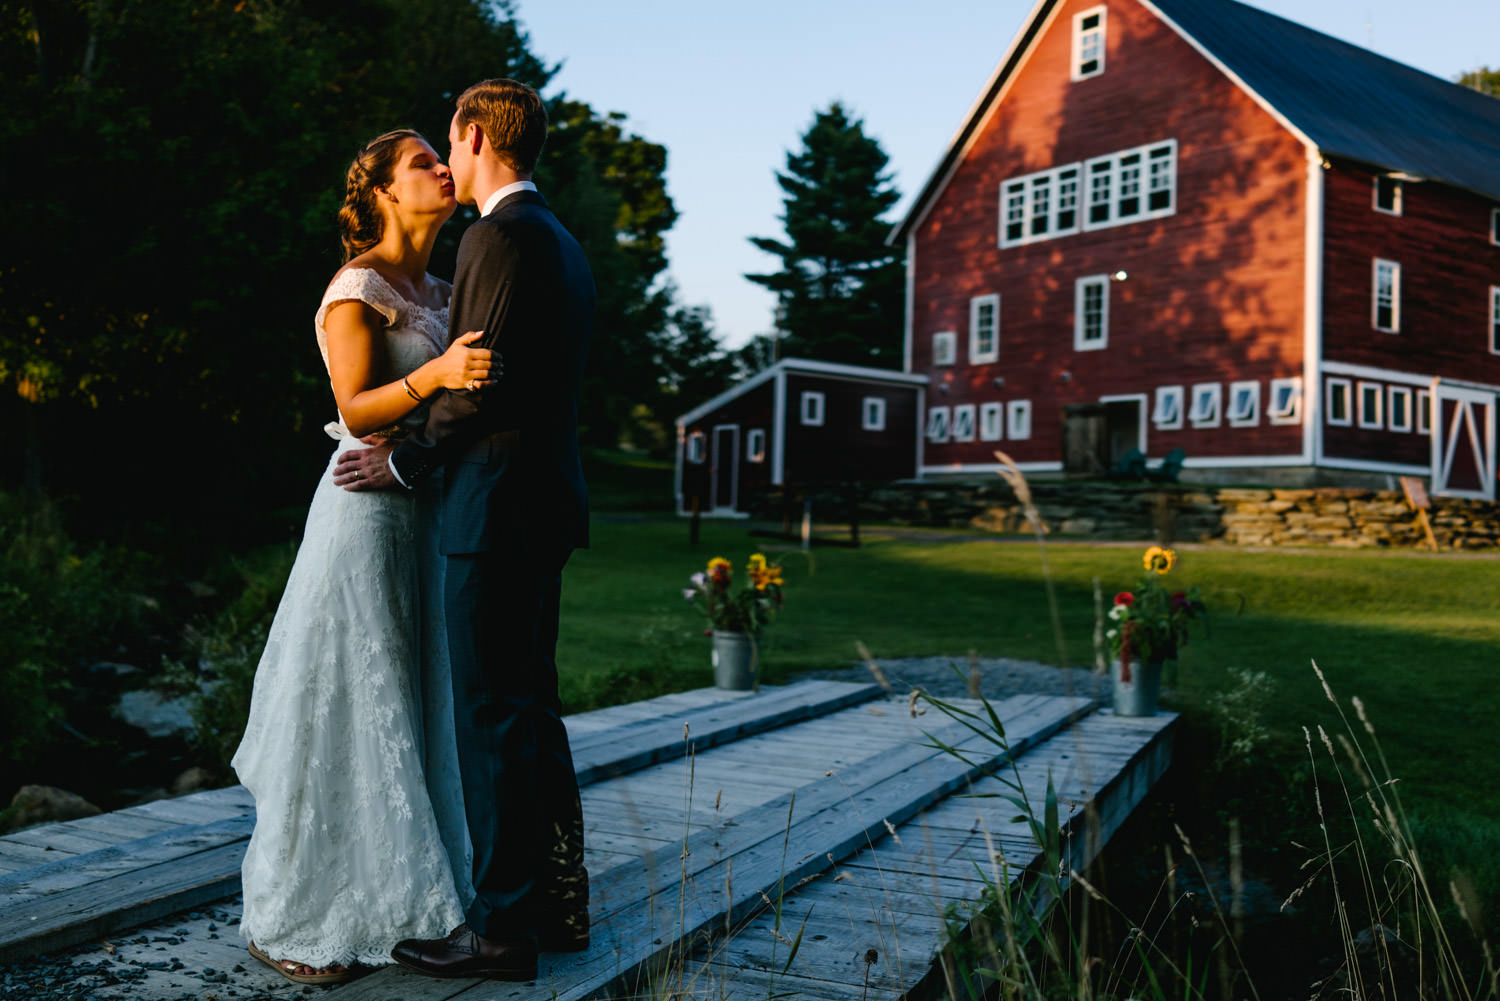 vermontbarn_destinationweddingphotographer_austendiamondphotography-8